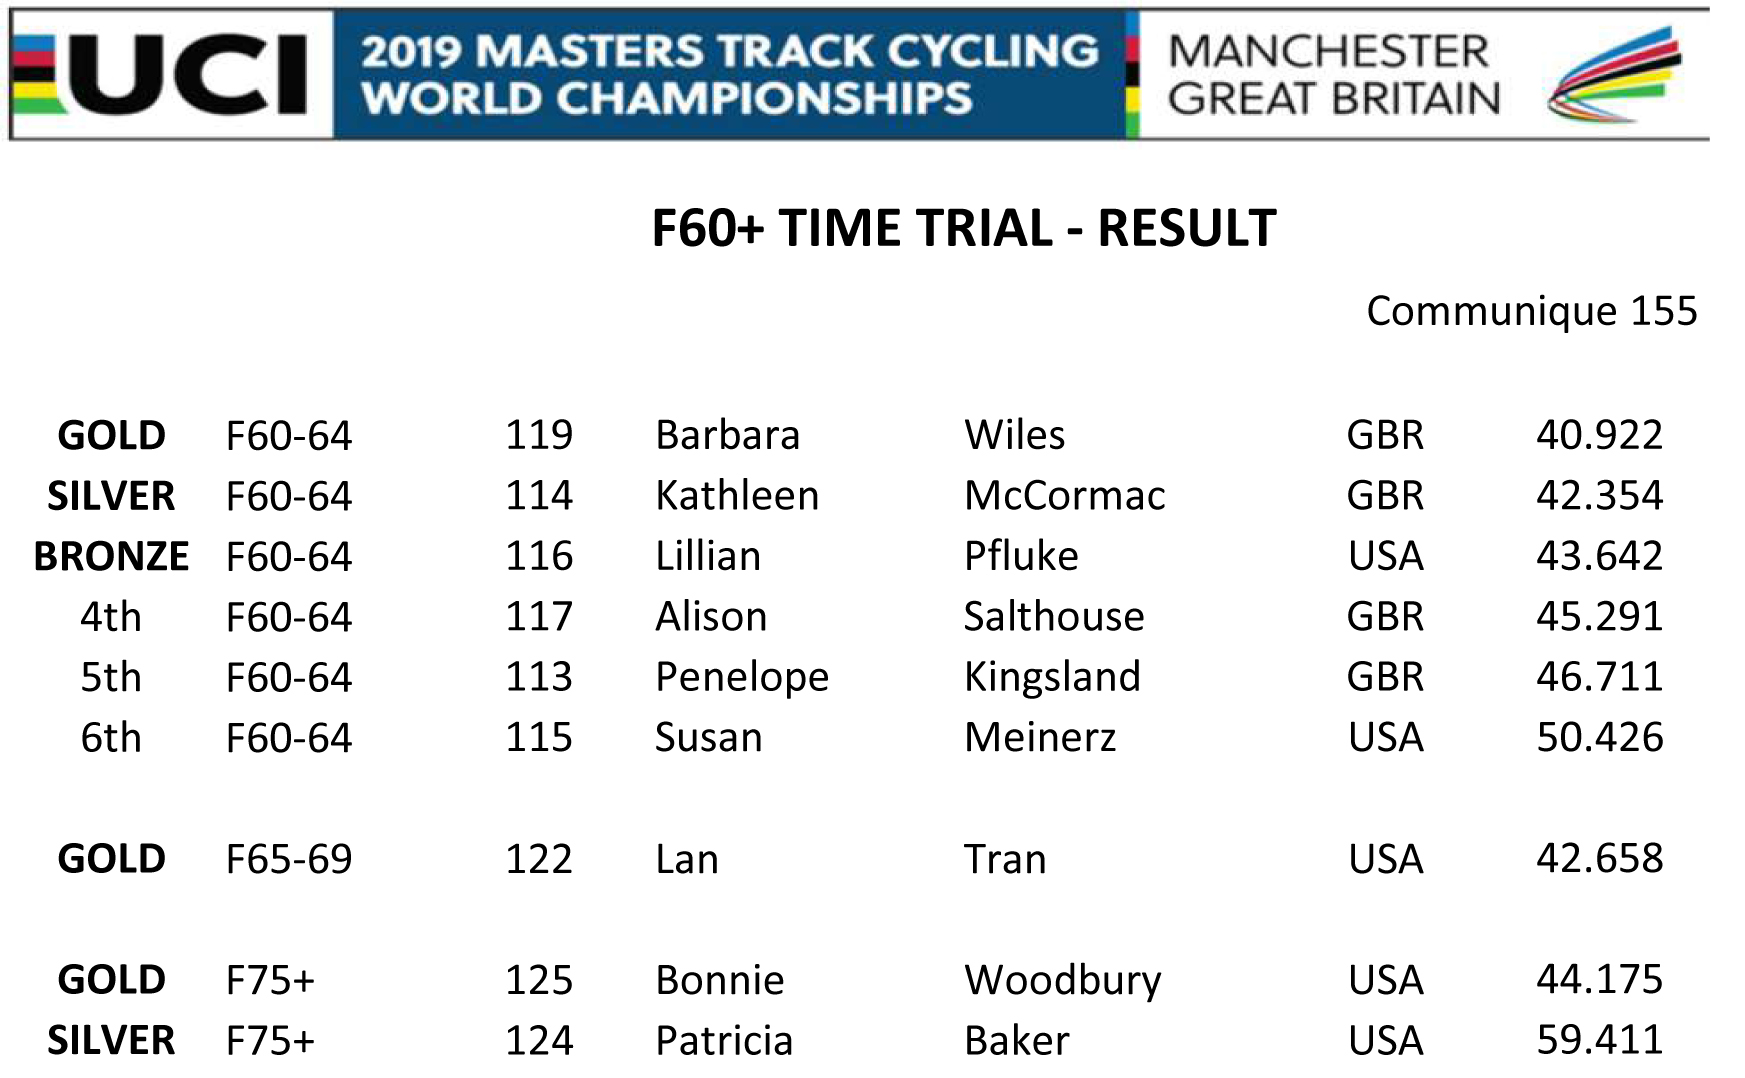 F60 TIME TRIAL RESULT